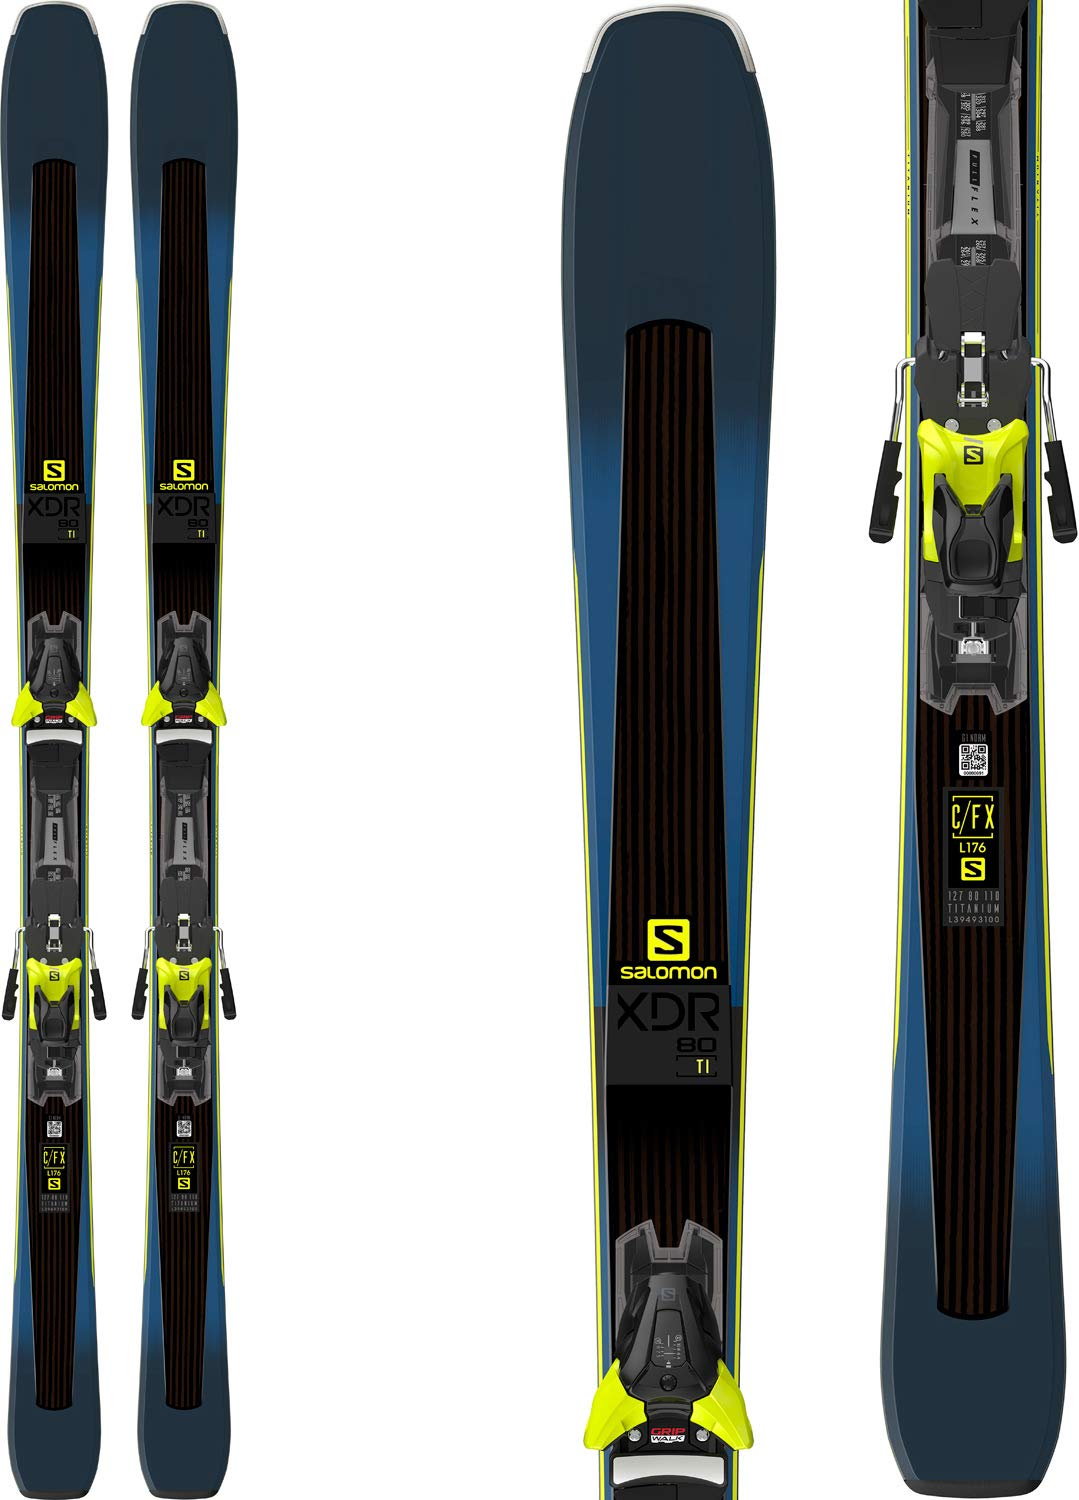 Salomon 2019 XDR 80 Ti Skis w/ Z12 Bindings (162cm) by Salomon